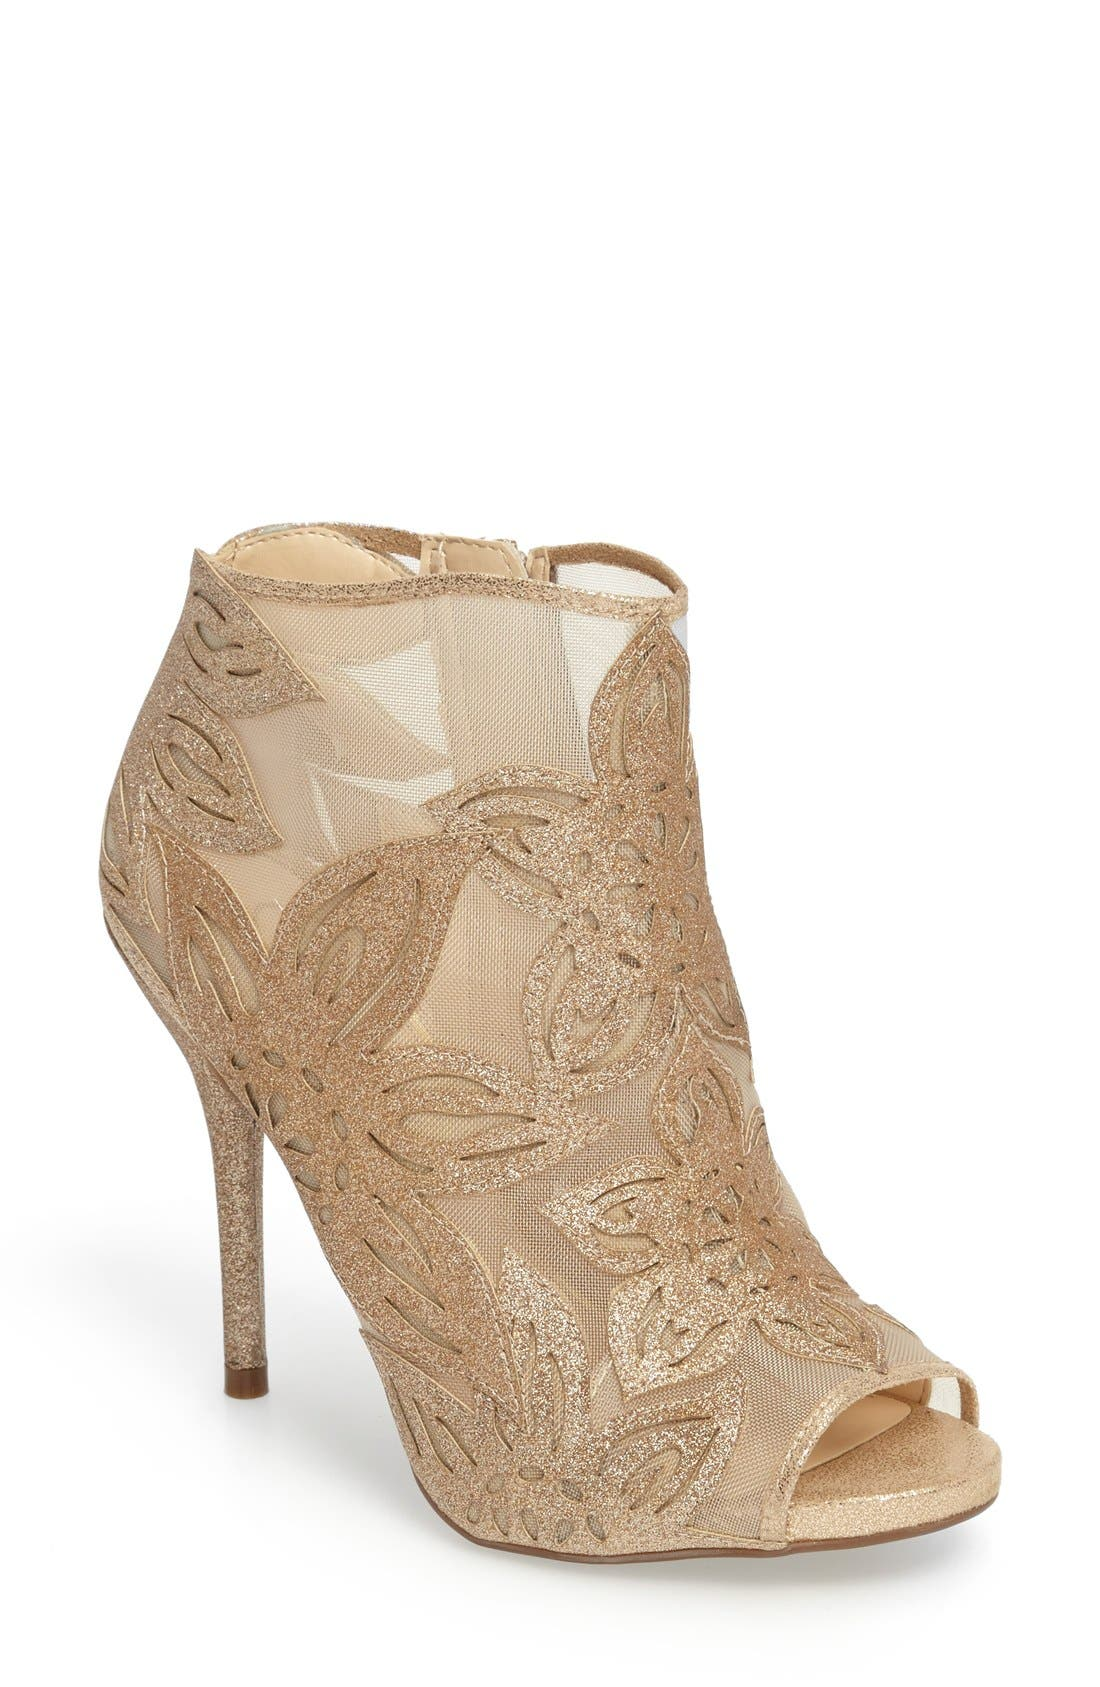 Alternate Image 1 Selected - Jessica Simpson Bliths Open Toe Bootie (Women)